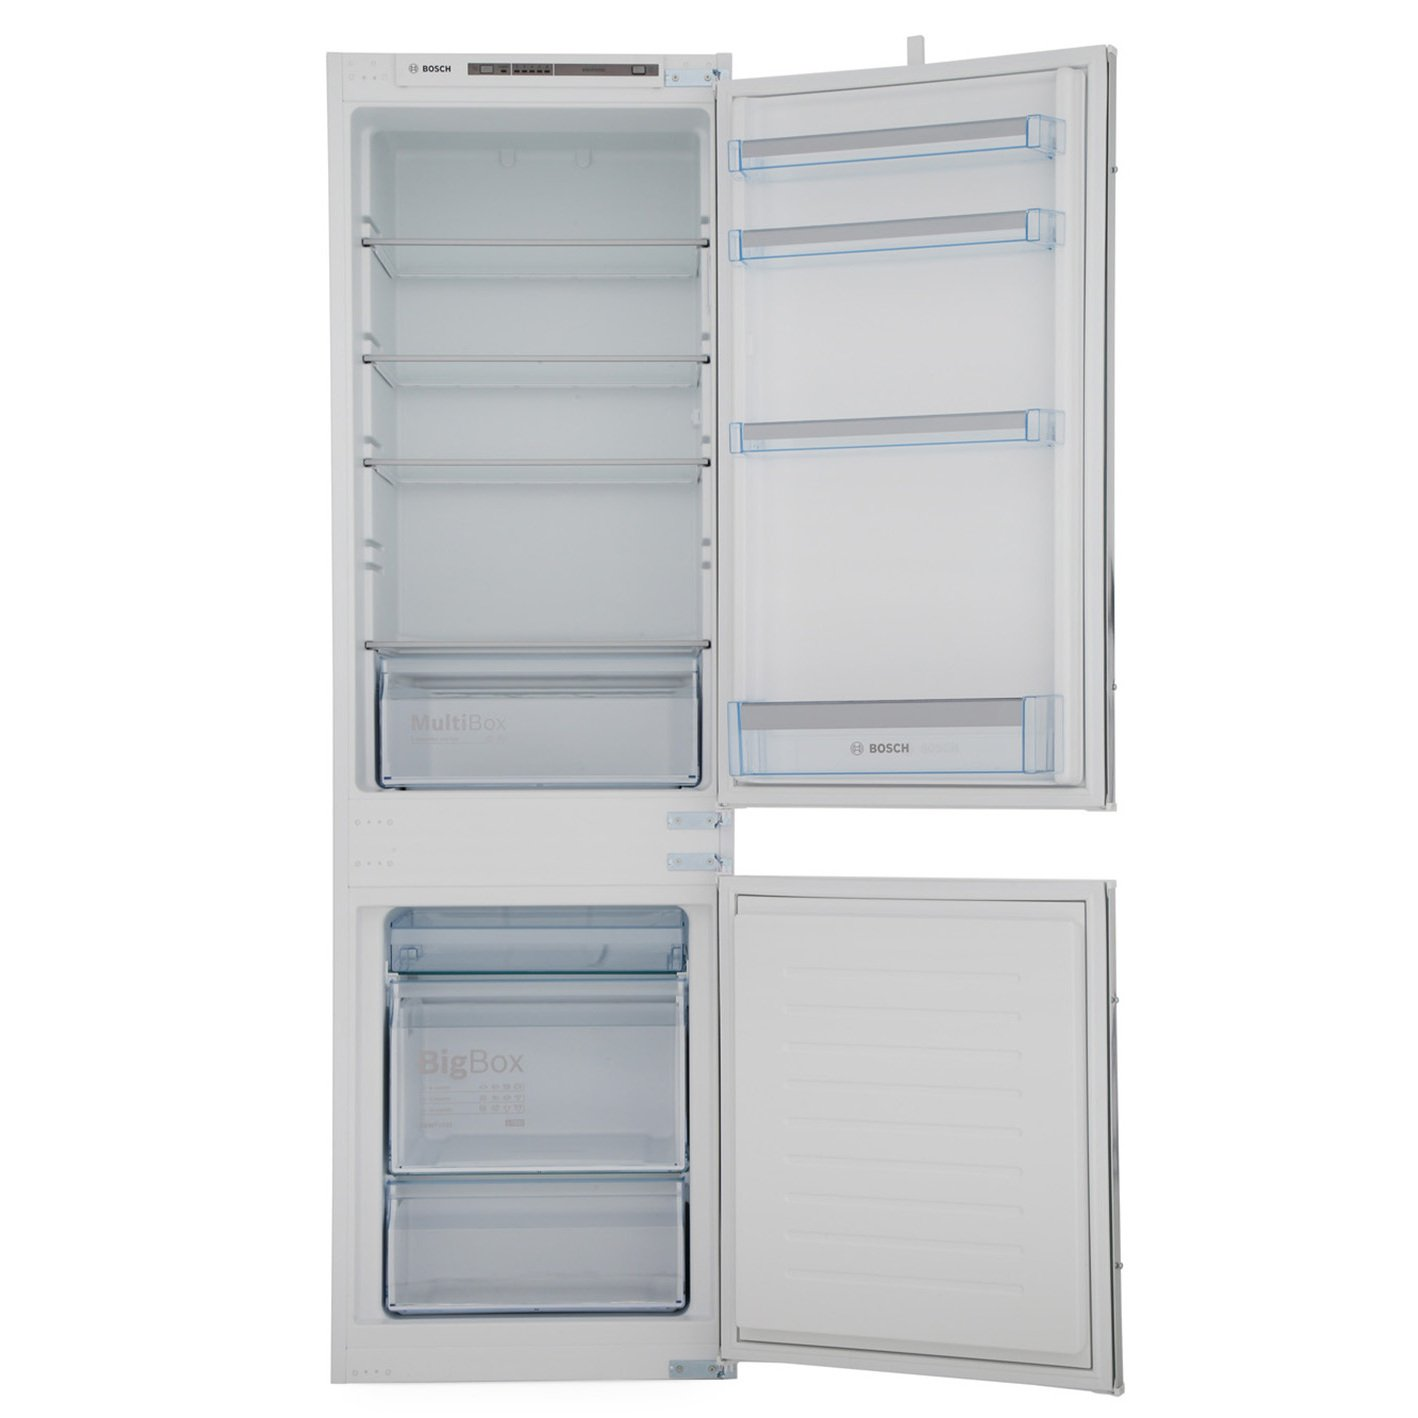 buy bosch serie 4 kiv86vs30g integrated fridge freezer kiv86vs30g white marks electrical. Black Bedroom Furniture Sets. Home Design Ideas